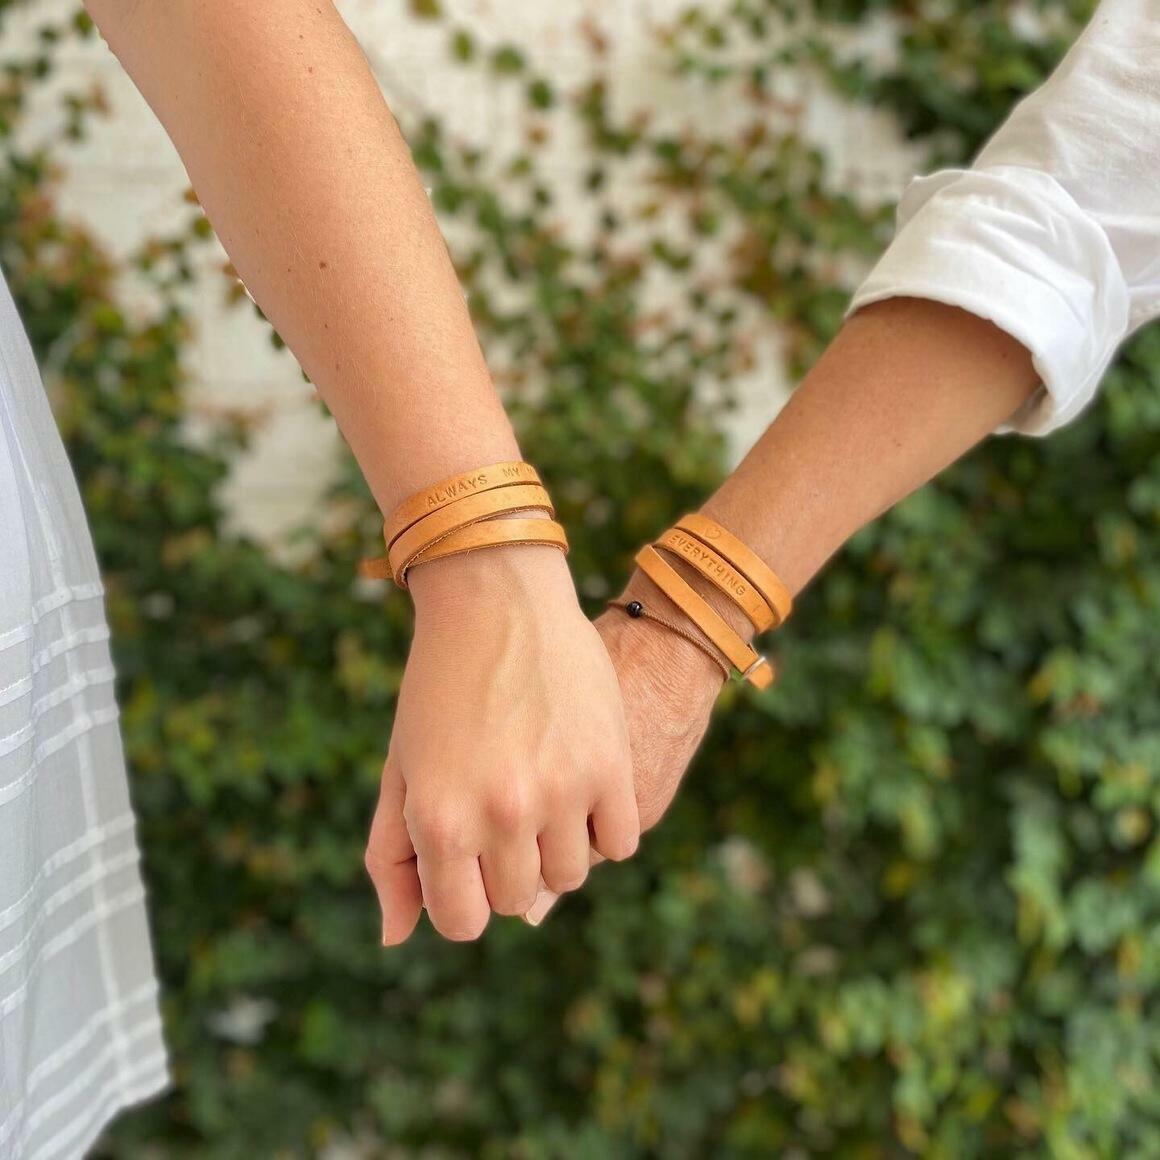 'YOU'VE GOT THIS' Power Of Words Leather Bracelet - Tan | Trada Marketplace